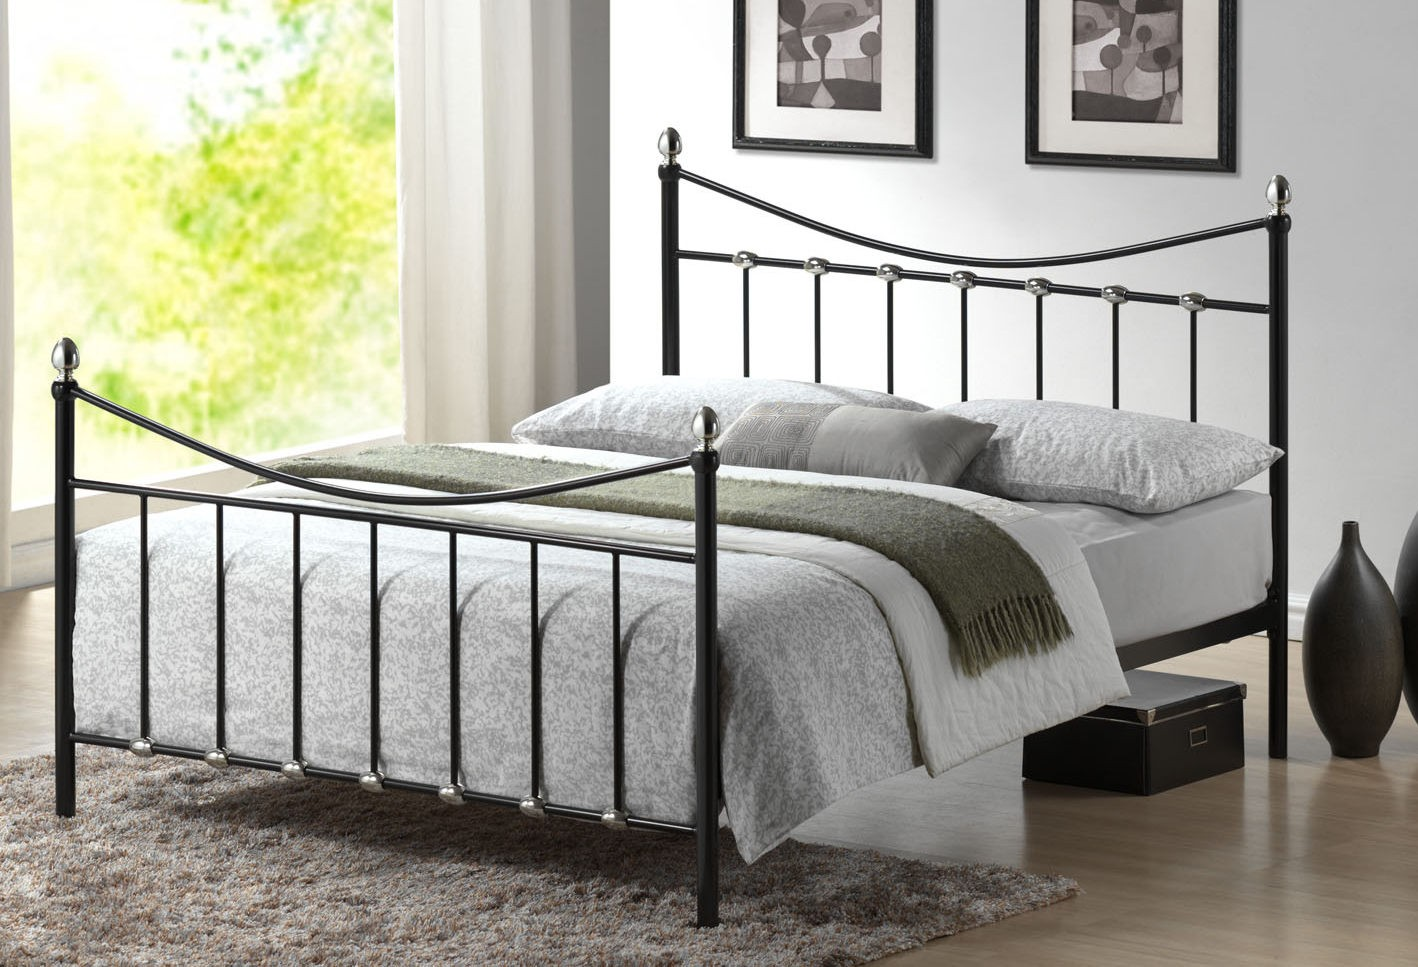 metal beds in bedroom design